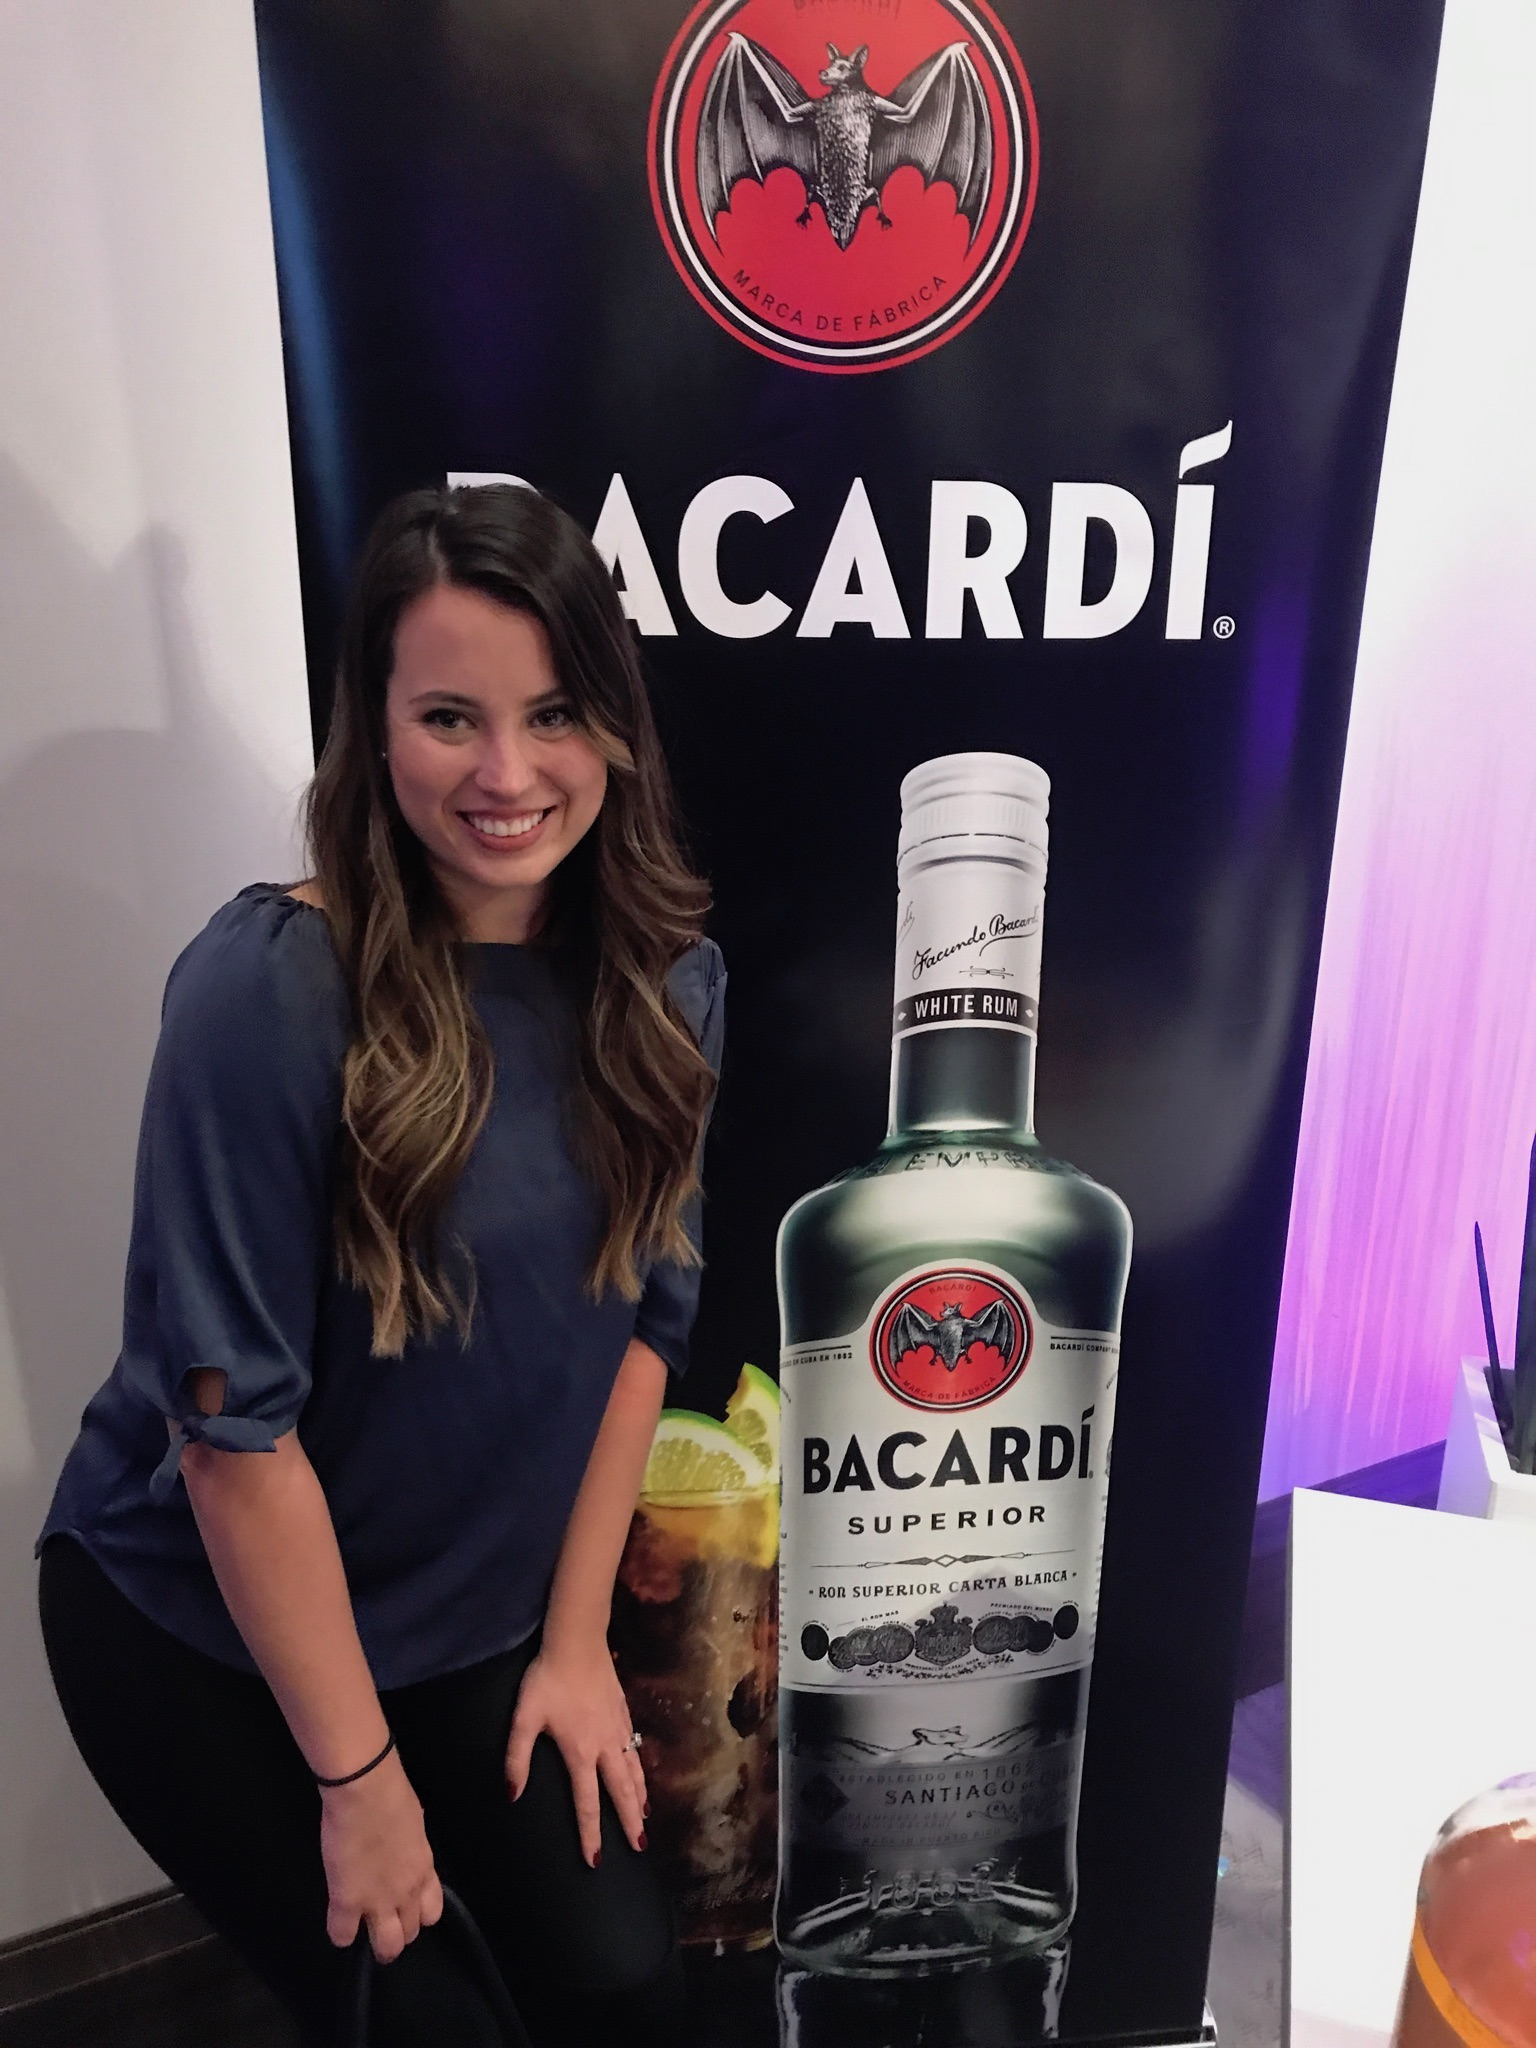 Le Chateau Parc served a delicious apple cider cocktail made with Bacardi rum